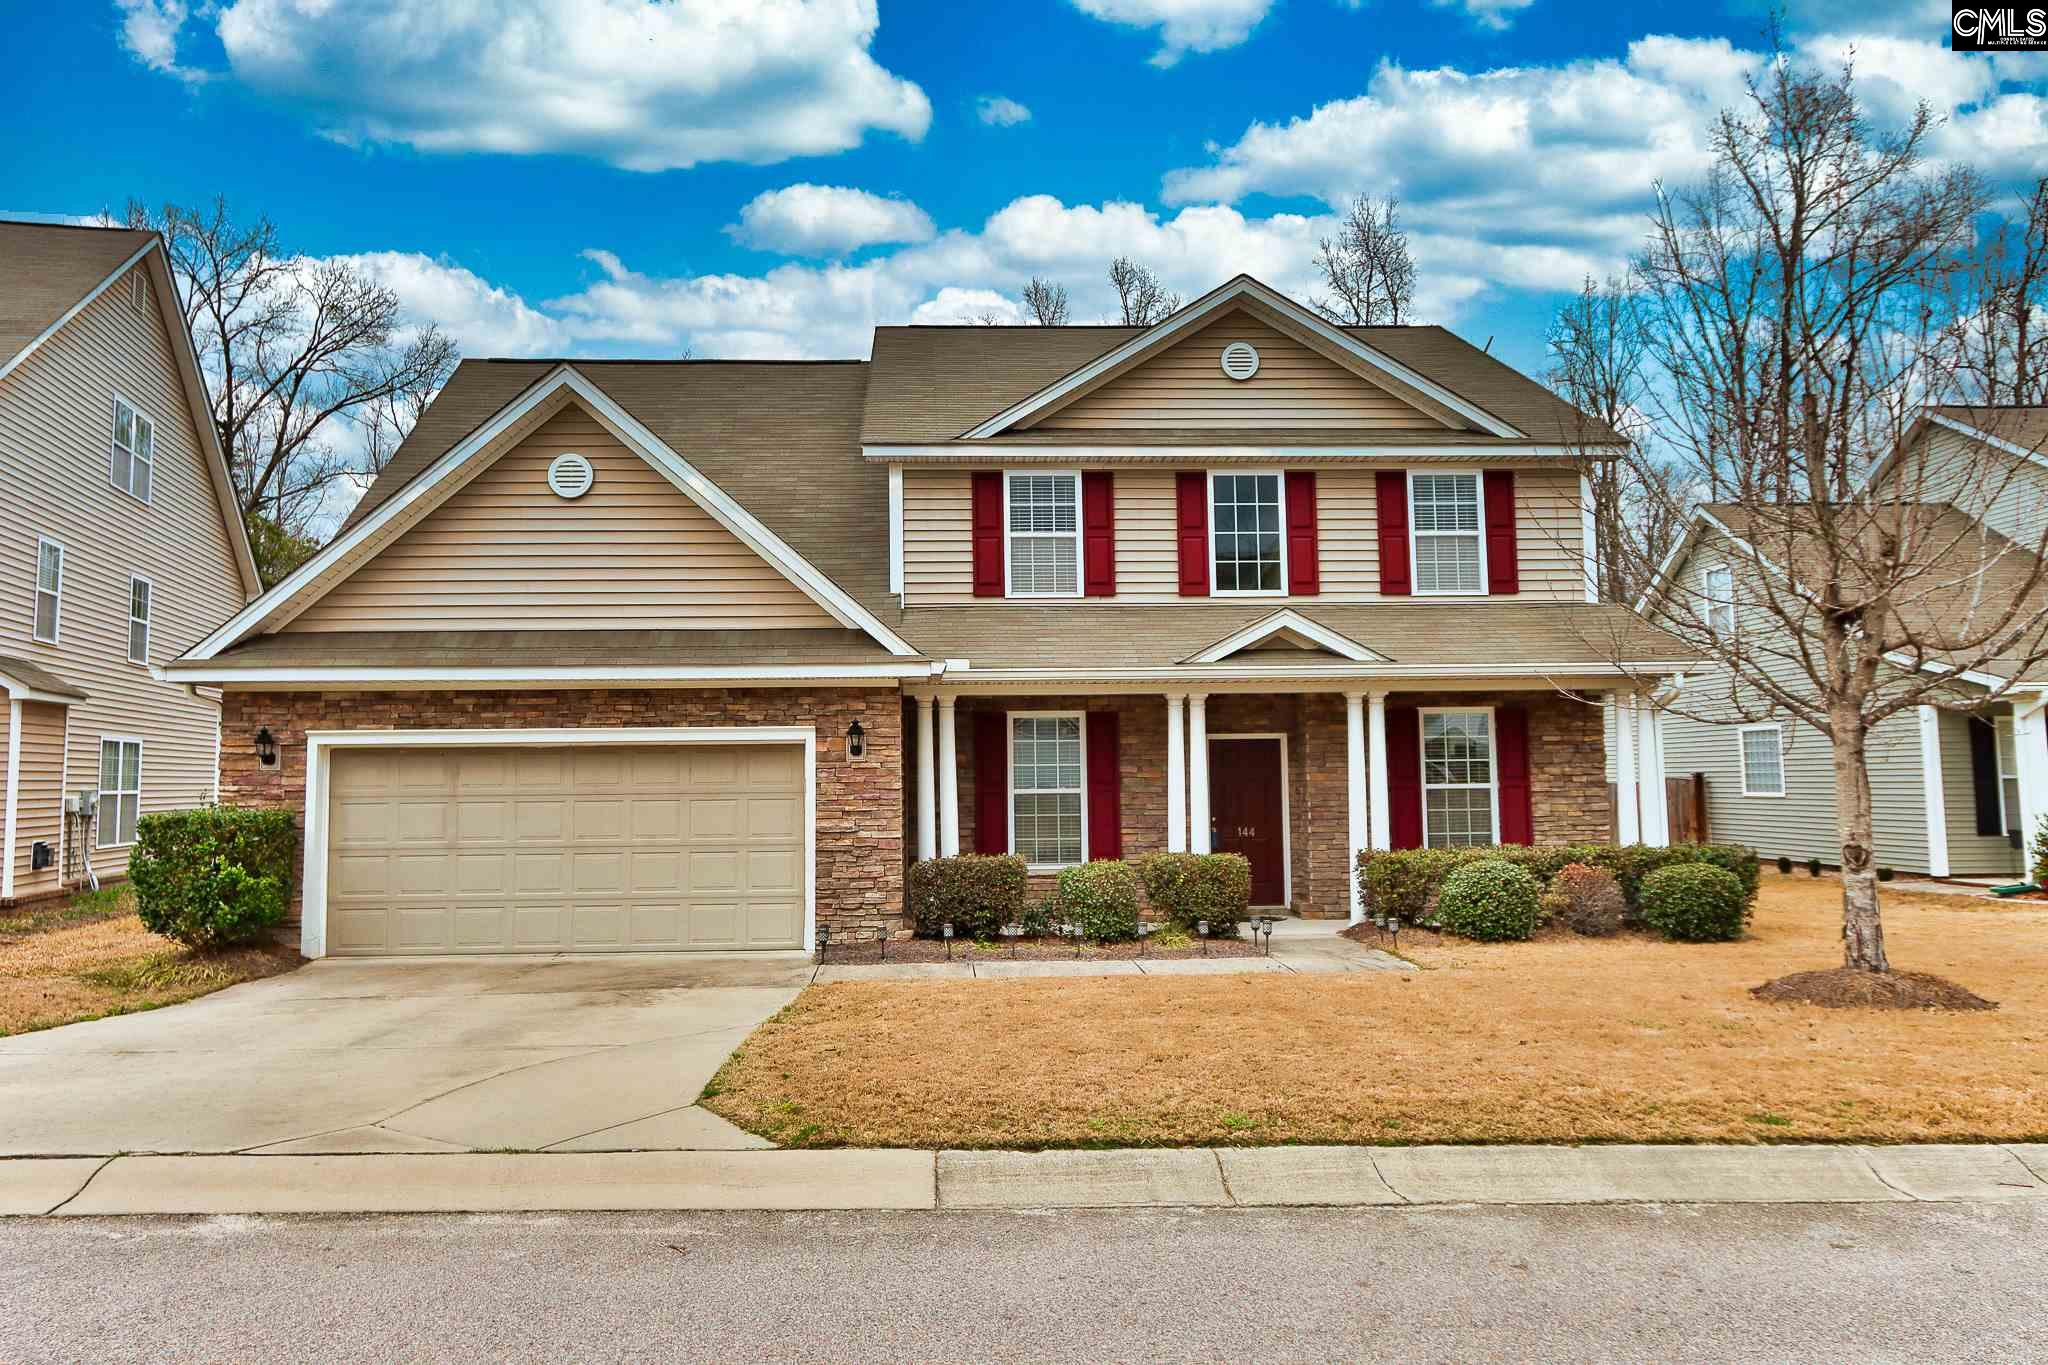 144 Millhouse Lane Lexington, SC 29072